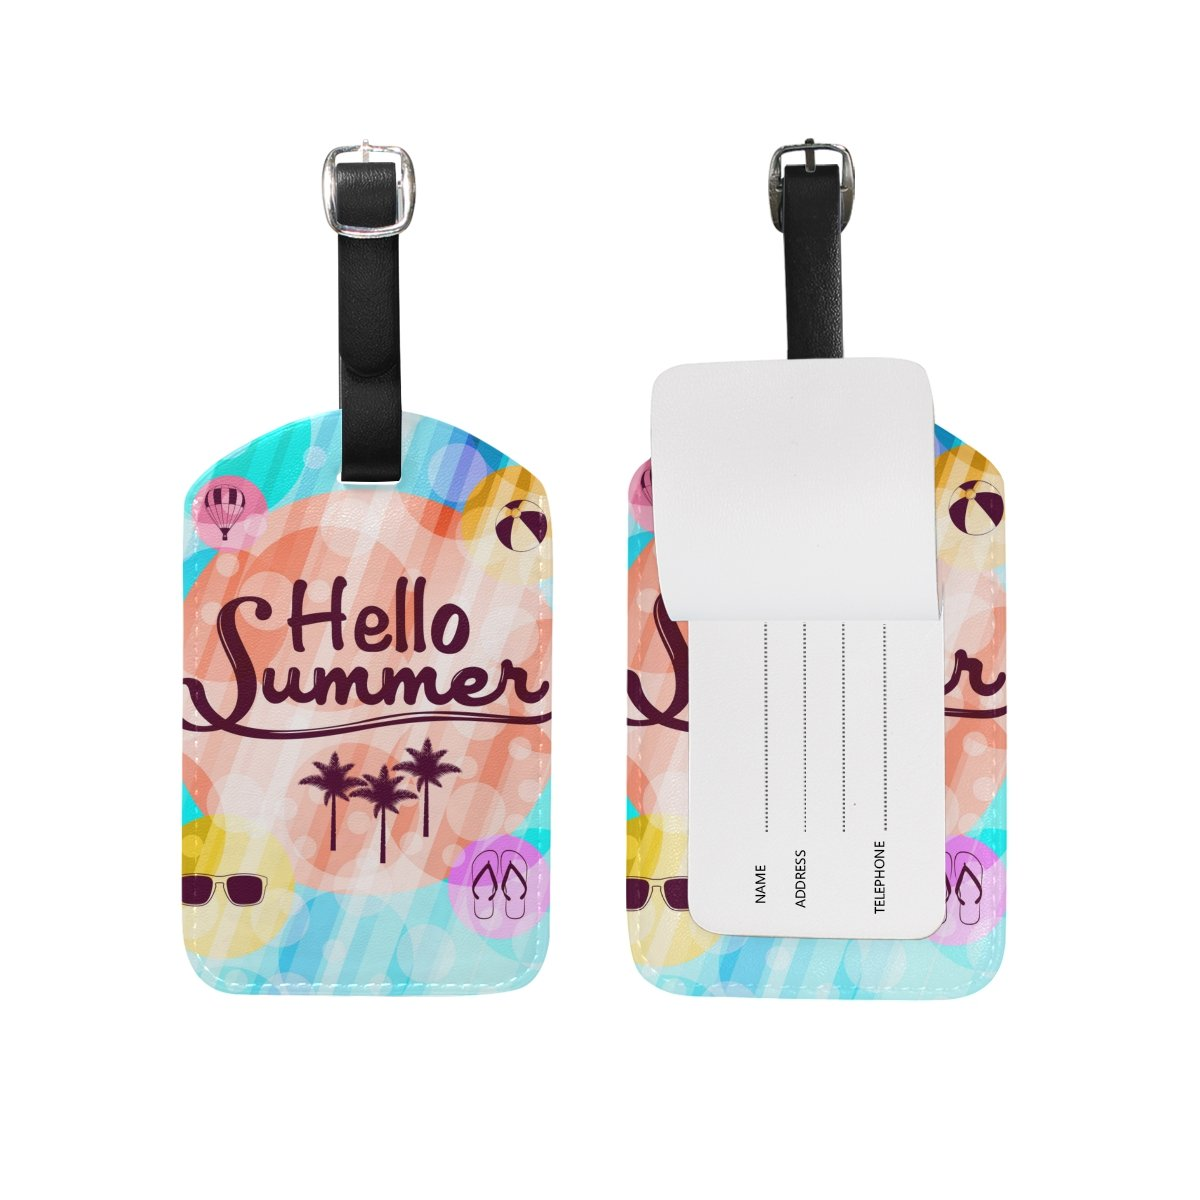 U LIFE Hello Welcome Summer Tropical Ocean Sea Beach Luggage Tag Travel Baggage Tags by ALAZA